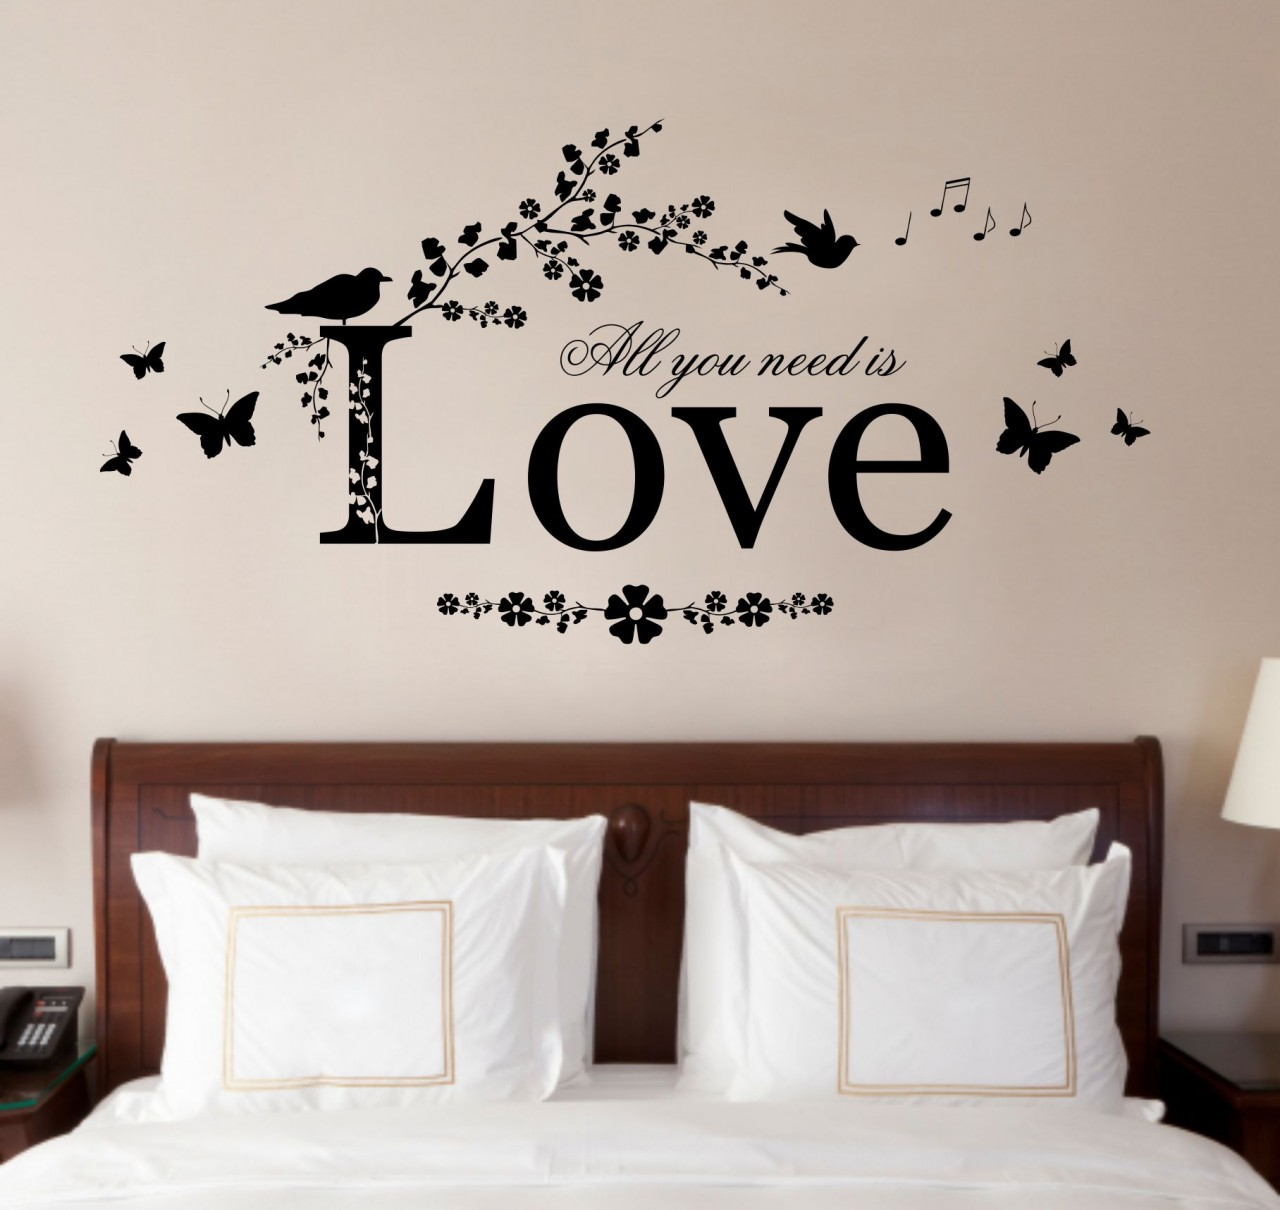 Pictures For The Bedroom Wall Bedroom Wall Design Thematic